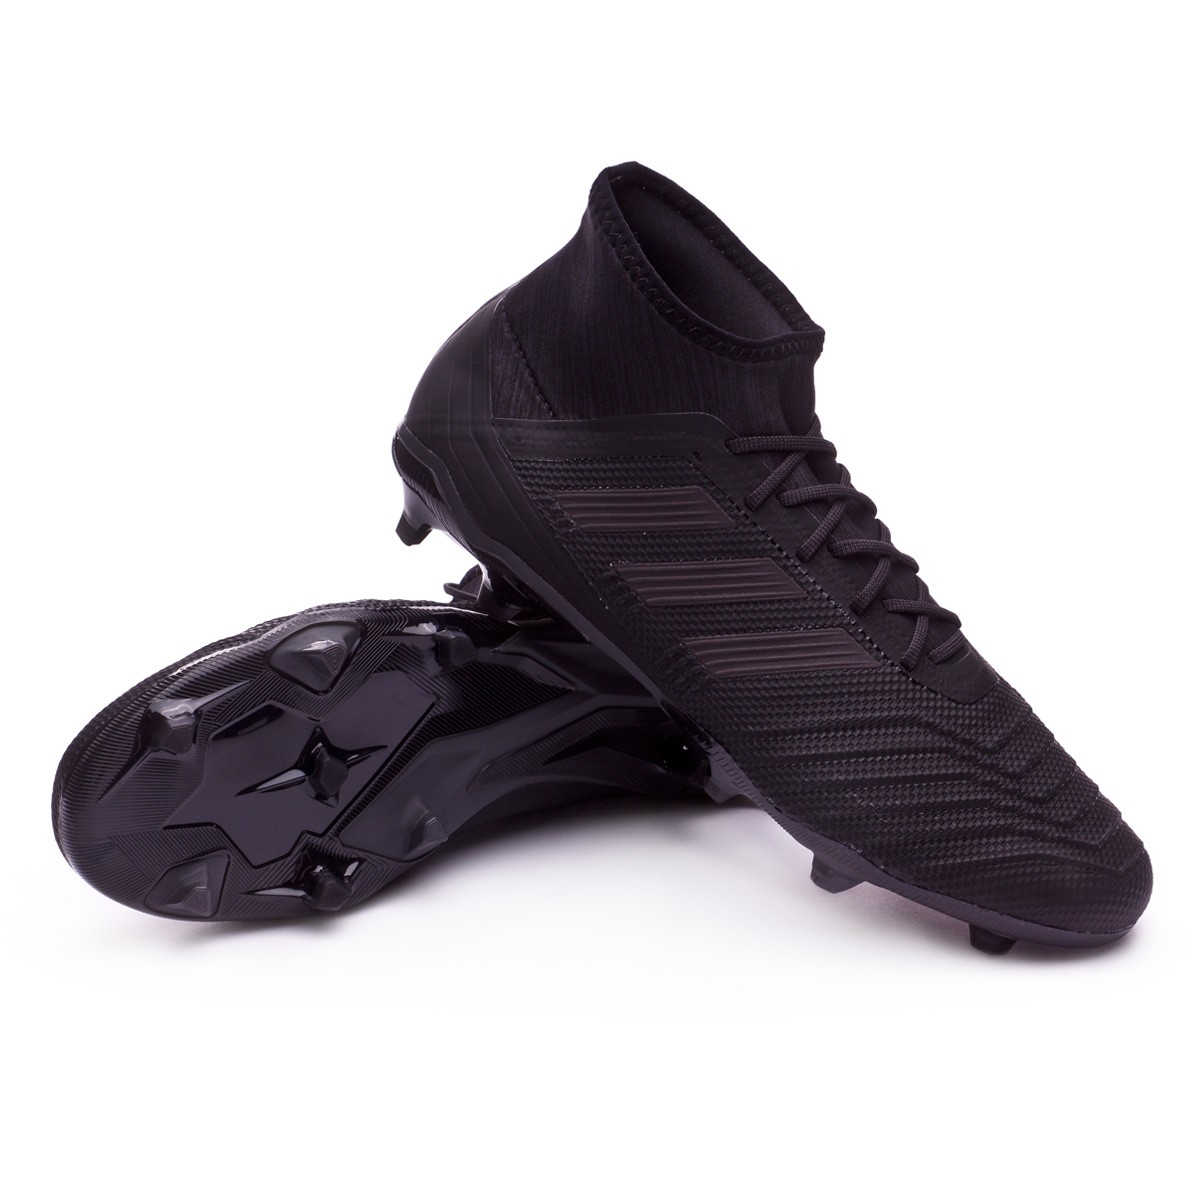 03c99ecc51f2ee Boot adidas Predator 18.2 FG Core black-Real coral - Football store ...